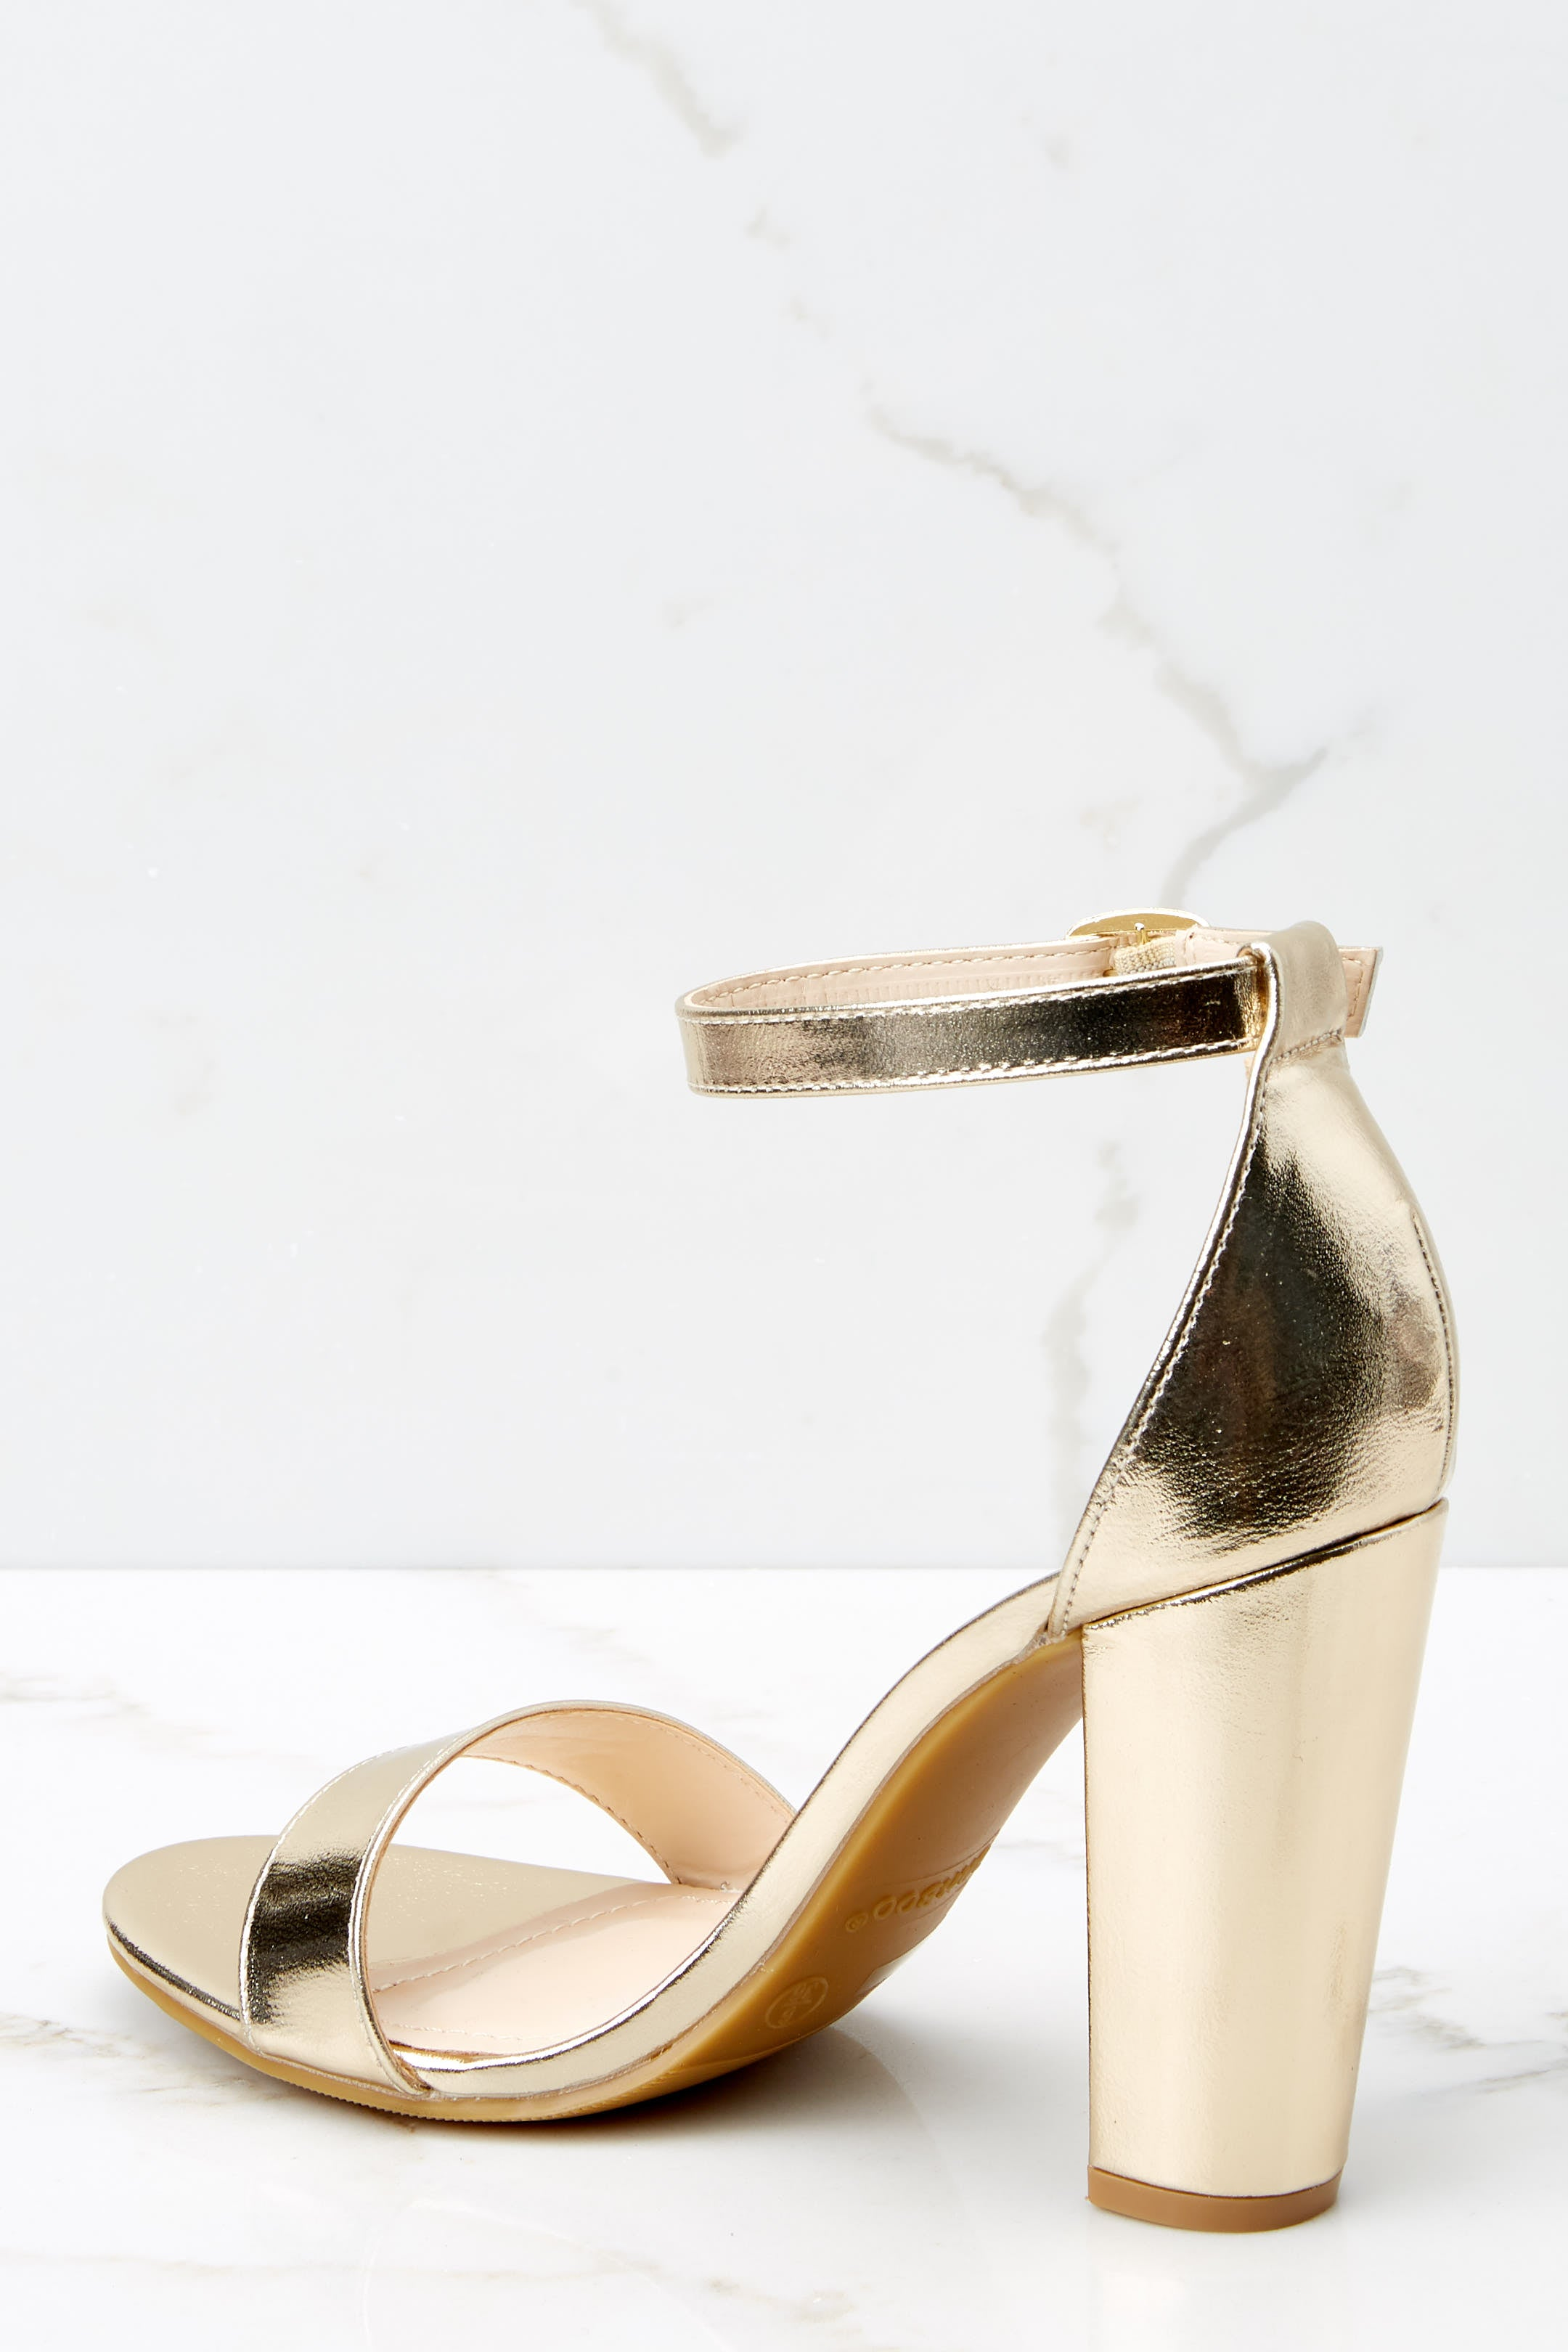 4 Plans To Dance Gold Ankle Strap Heels at reddressboutique.com